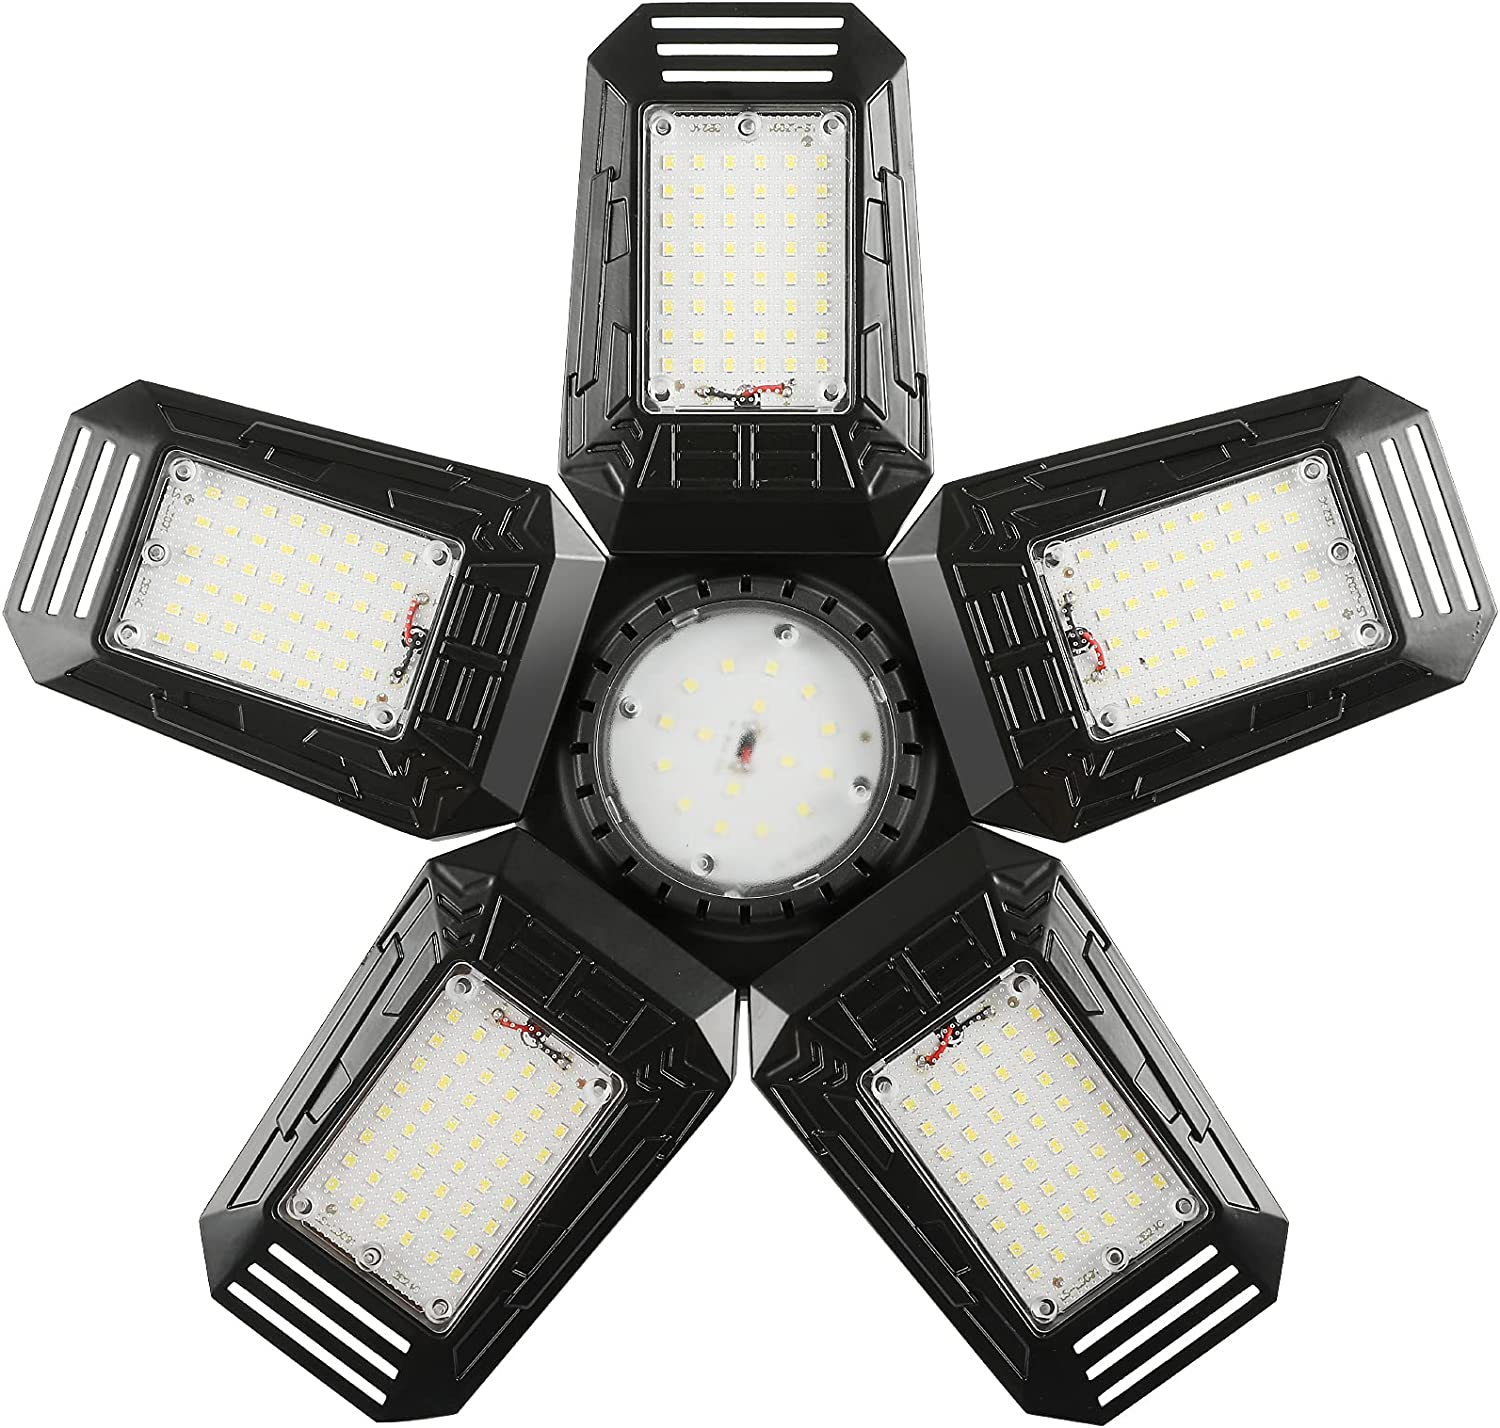 Garage Light 160W LED - 16000LM 6500K Direct stock discount Deformable Shipping included LE